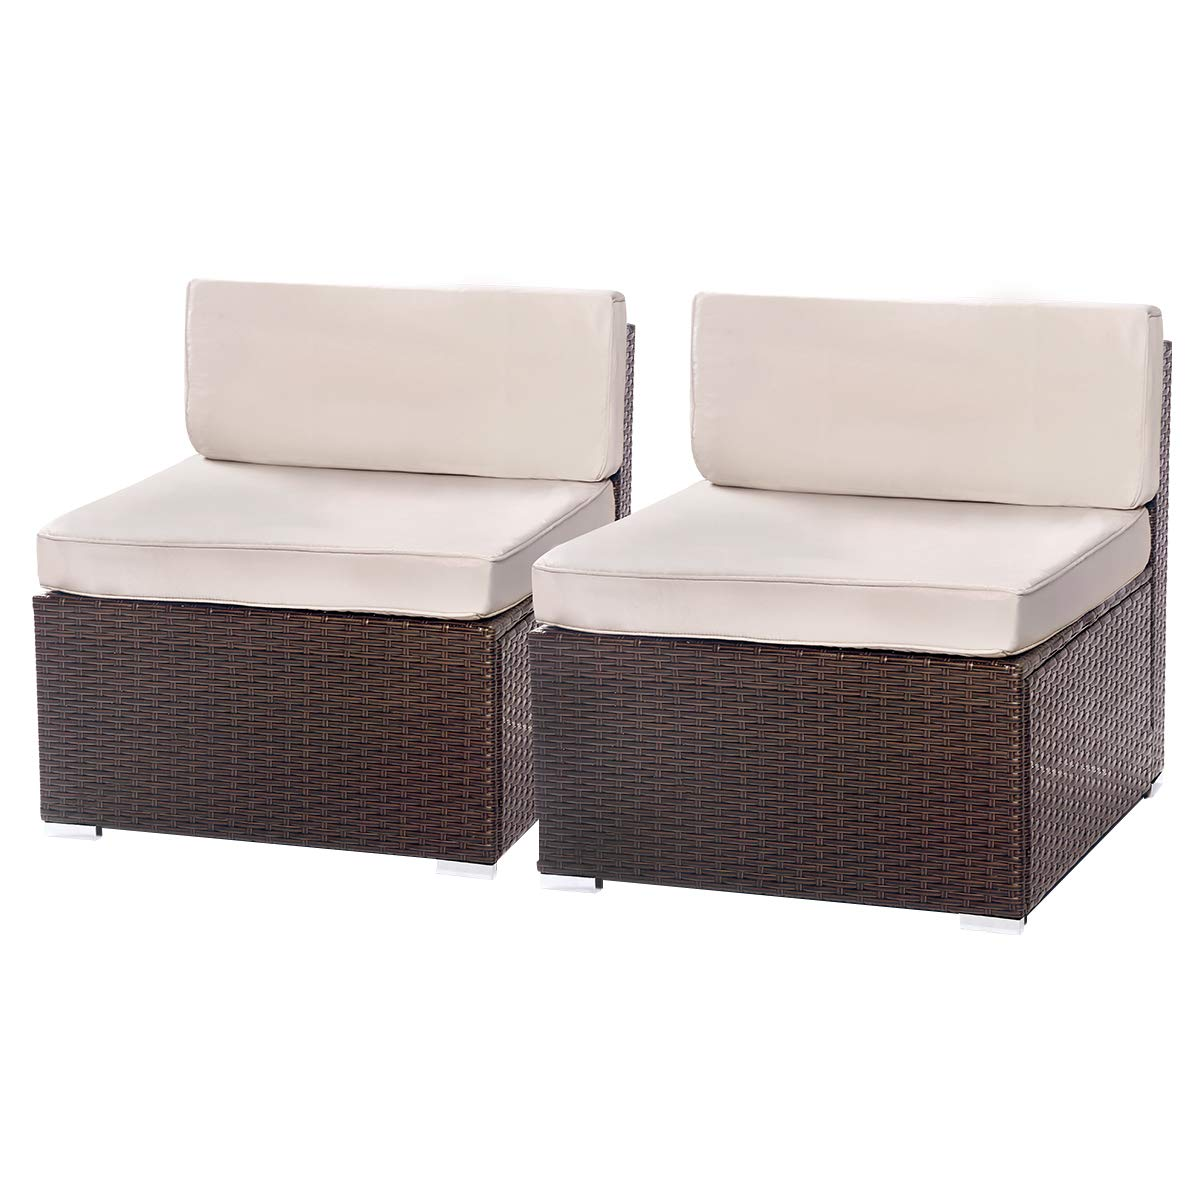 U-MAX 1-14 Pieces Patio sectional Sofa Set (2 Pieces, Brown) by U-MAX